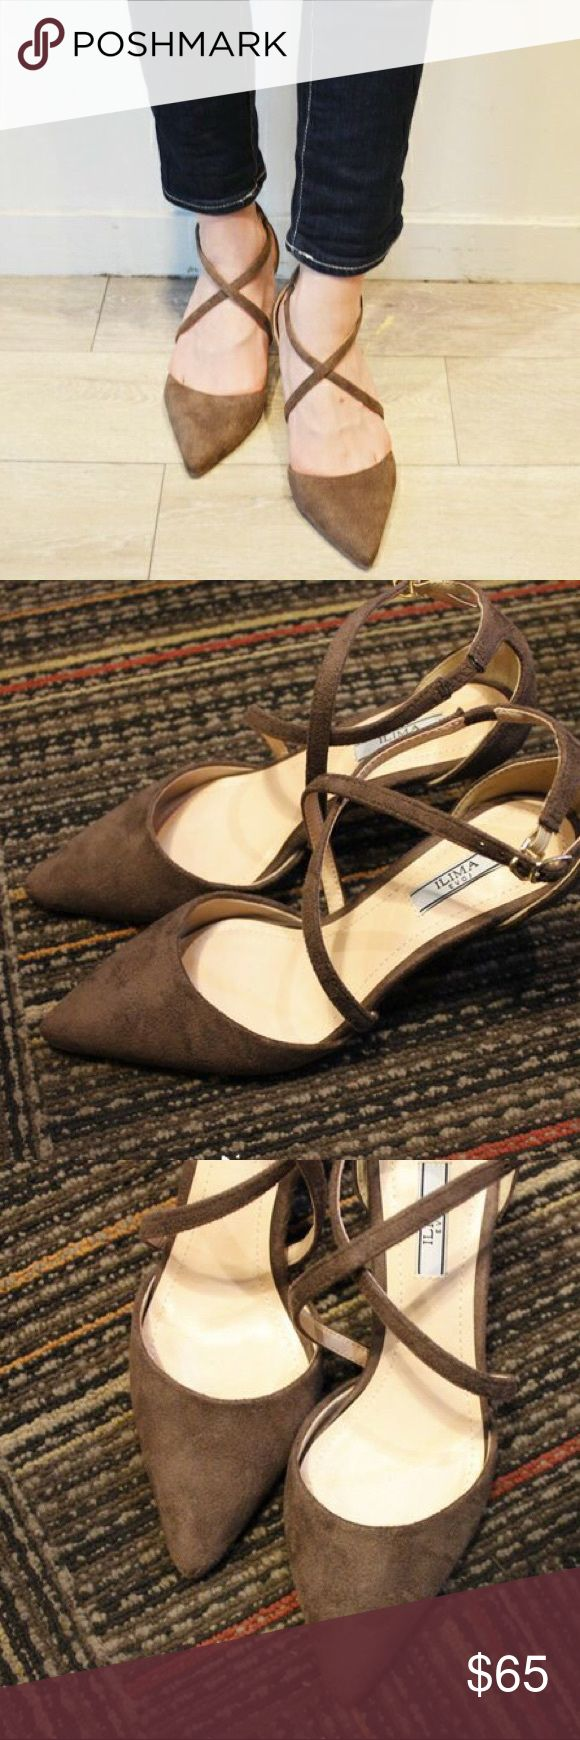 ❤️MustGo❤️ brown high heel lace up 5cm height heel Brand is ILIMA from Japan. Tag Zara for exposure! Very comfortable to wear daily for work/school/shopping Fashionable design good for date night out!  Only worn once, in excellent condition! I'm going to move to a new city next year, so try to sell everything! Take reasonable offer, no trade no lowball Make an offer and it's yours!  Thank you  Zara Shoes Heels